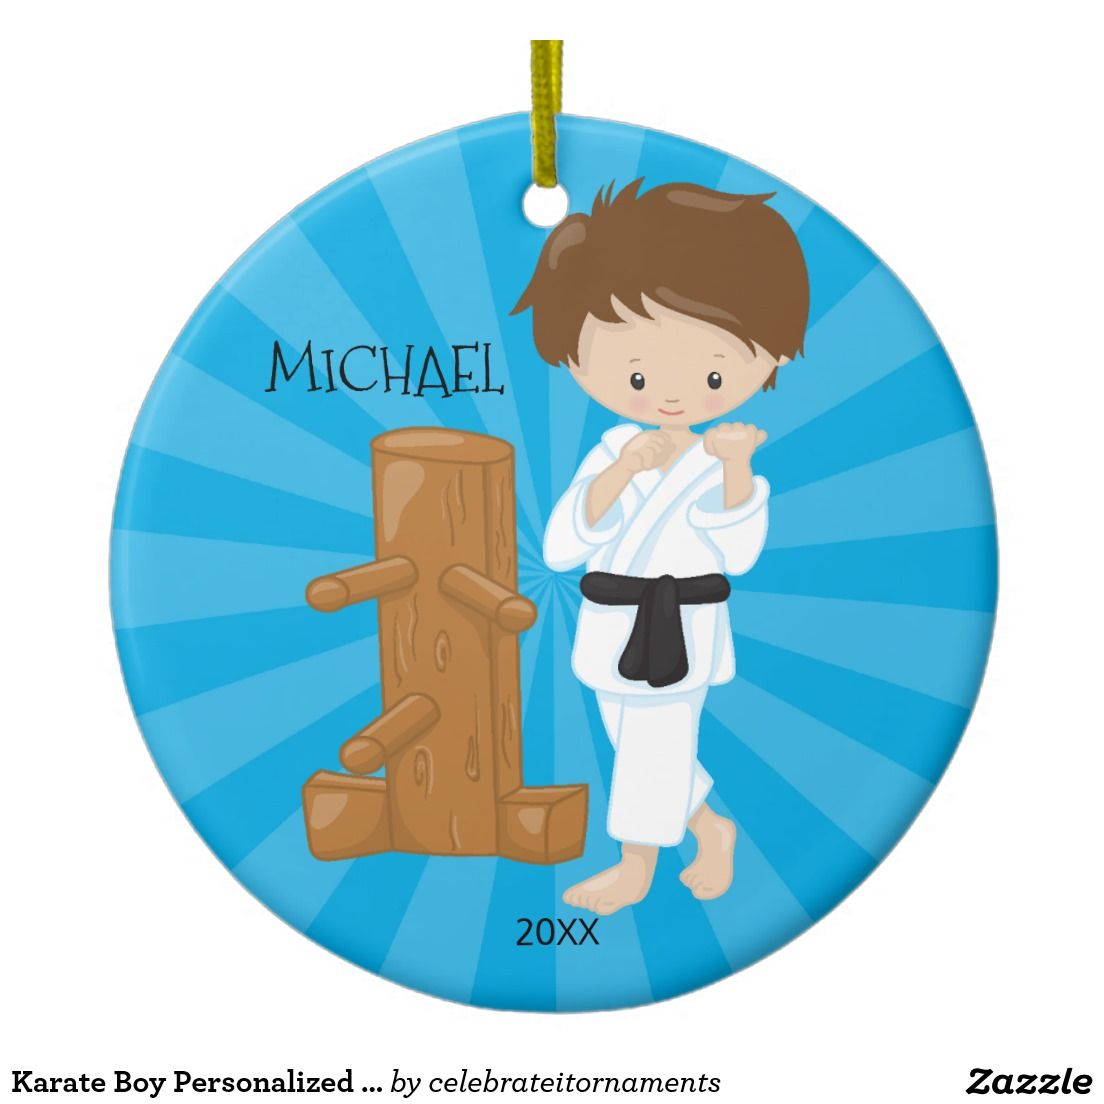 Karate ornament - Karate Boy Personalized Christmas Ornament